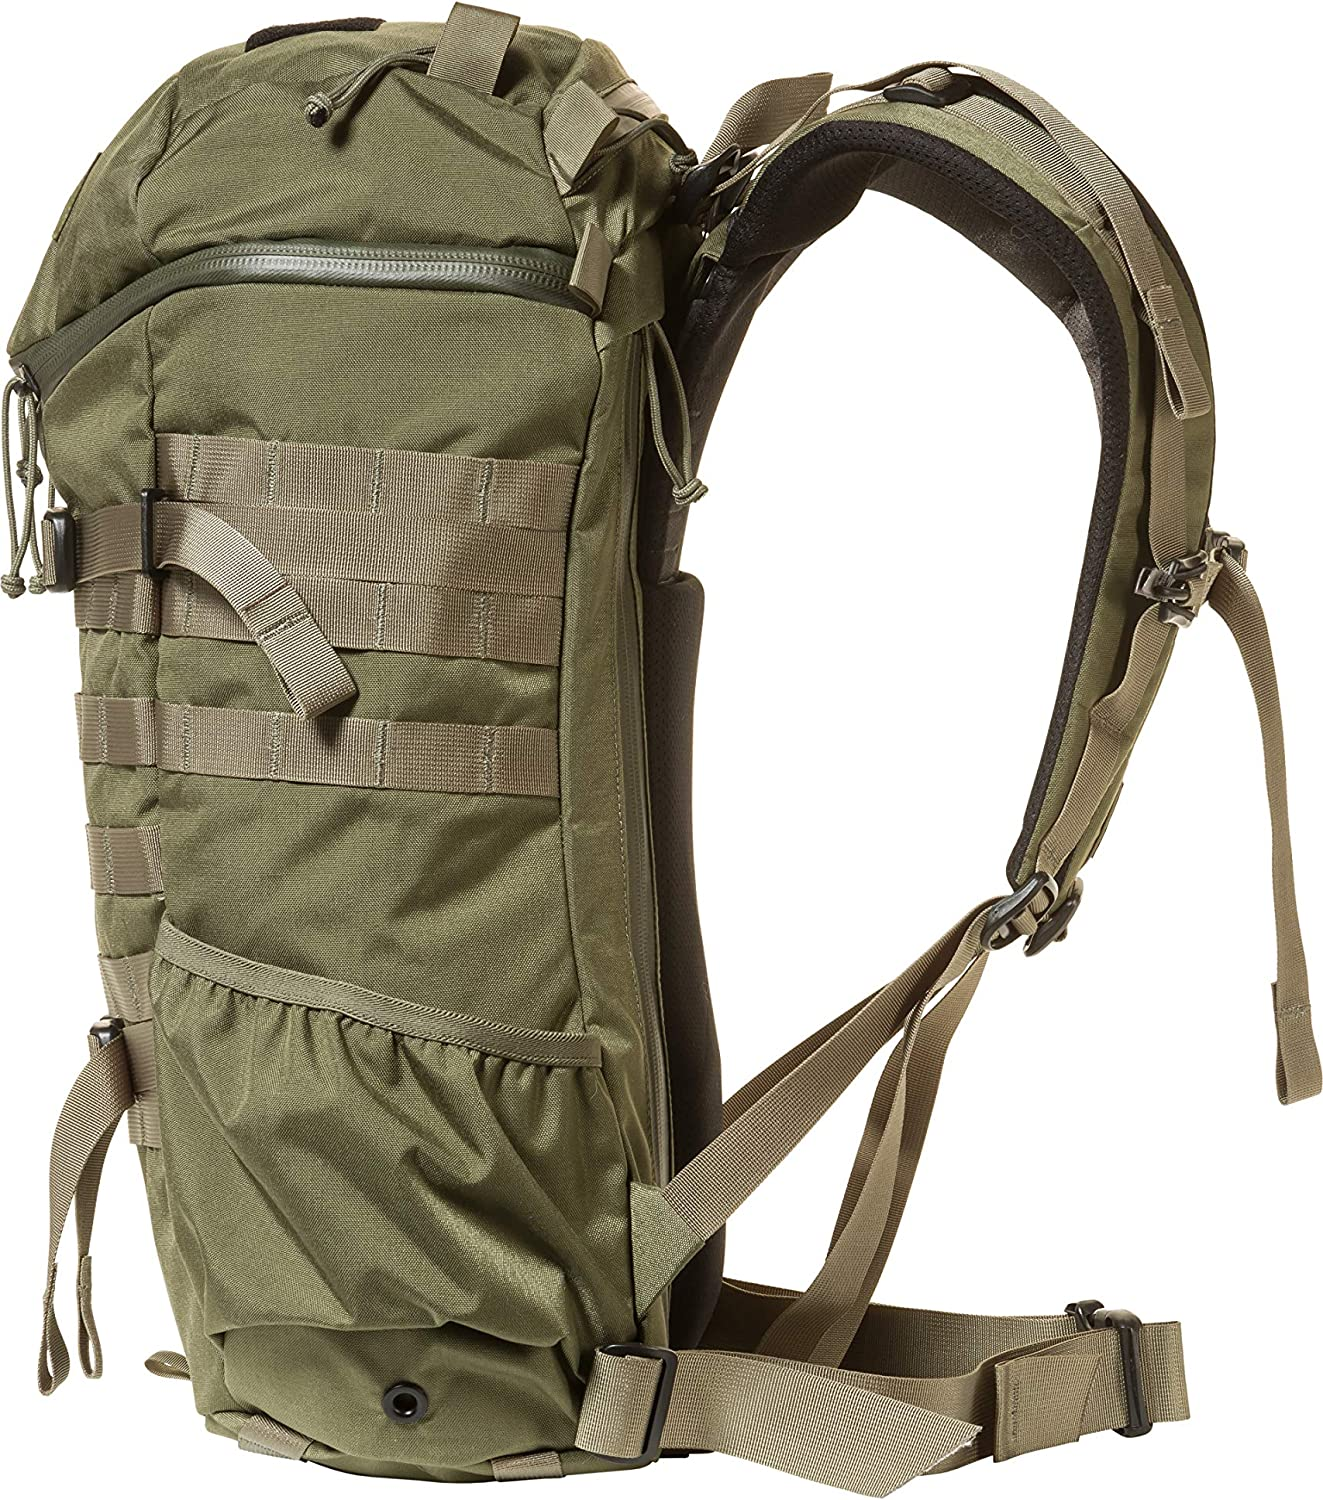 Tactical PacksVersatile Molle Daypack MYSTERY RANCH 2 Day Assault Backpack